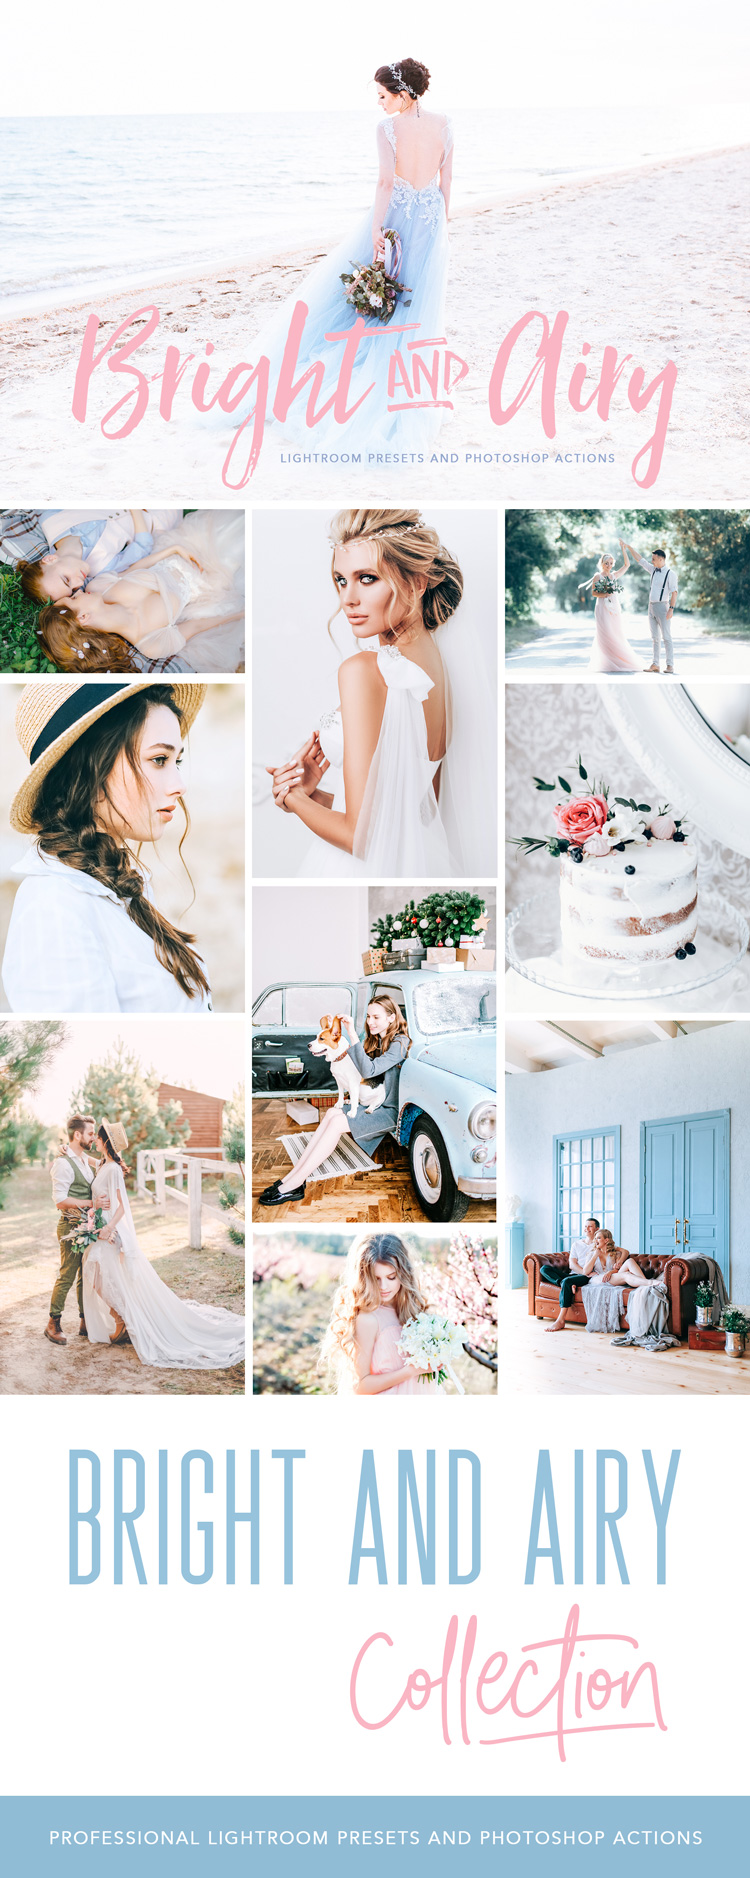 Bright and Airy photography Lightroom presets and Photoshop actions #photography #weddingphotography